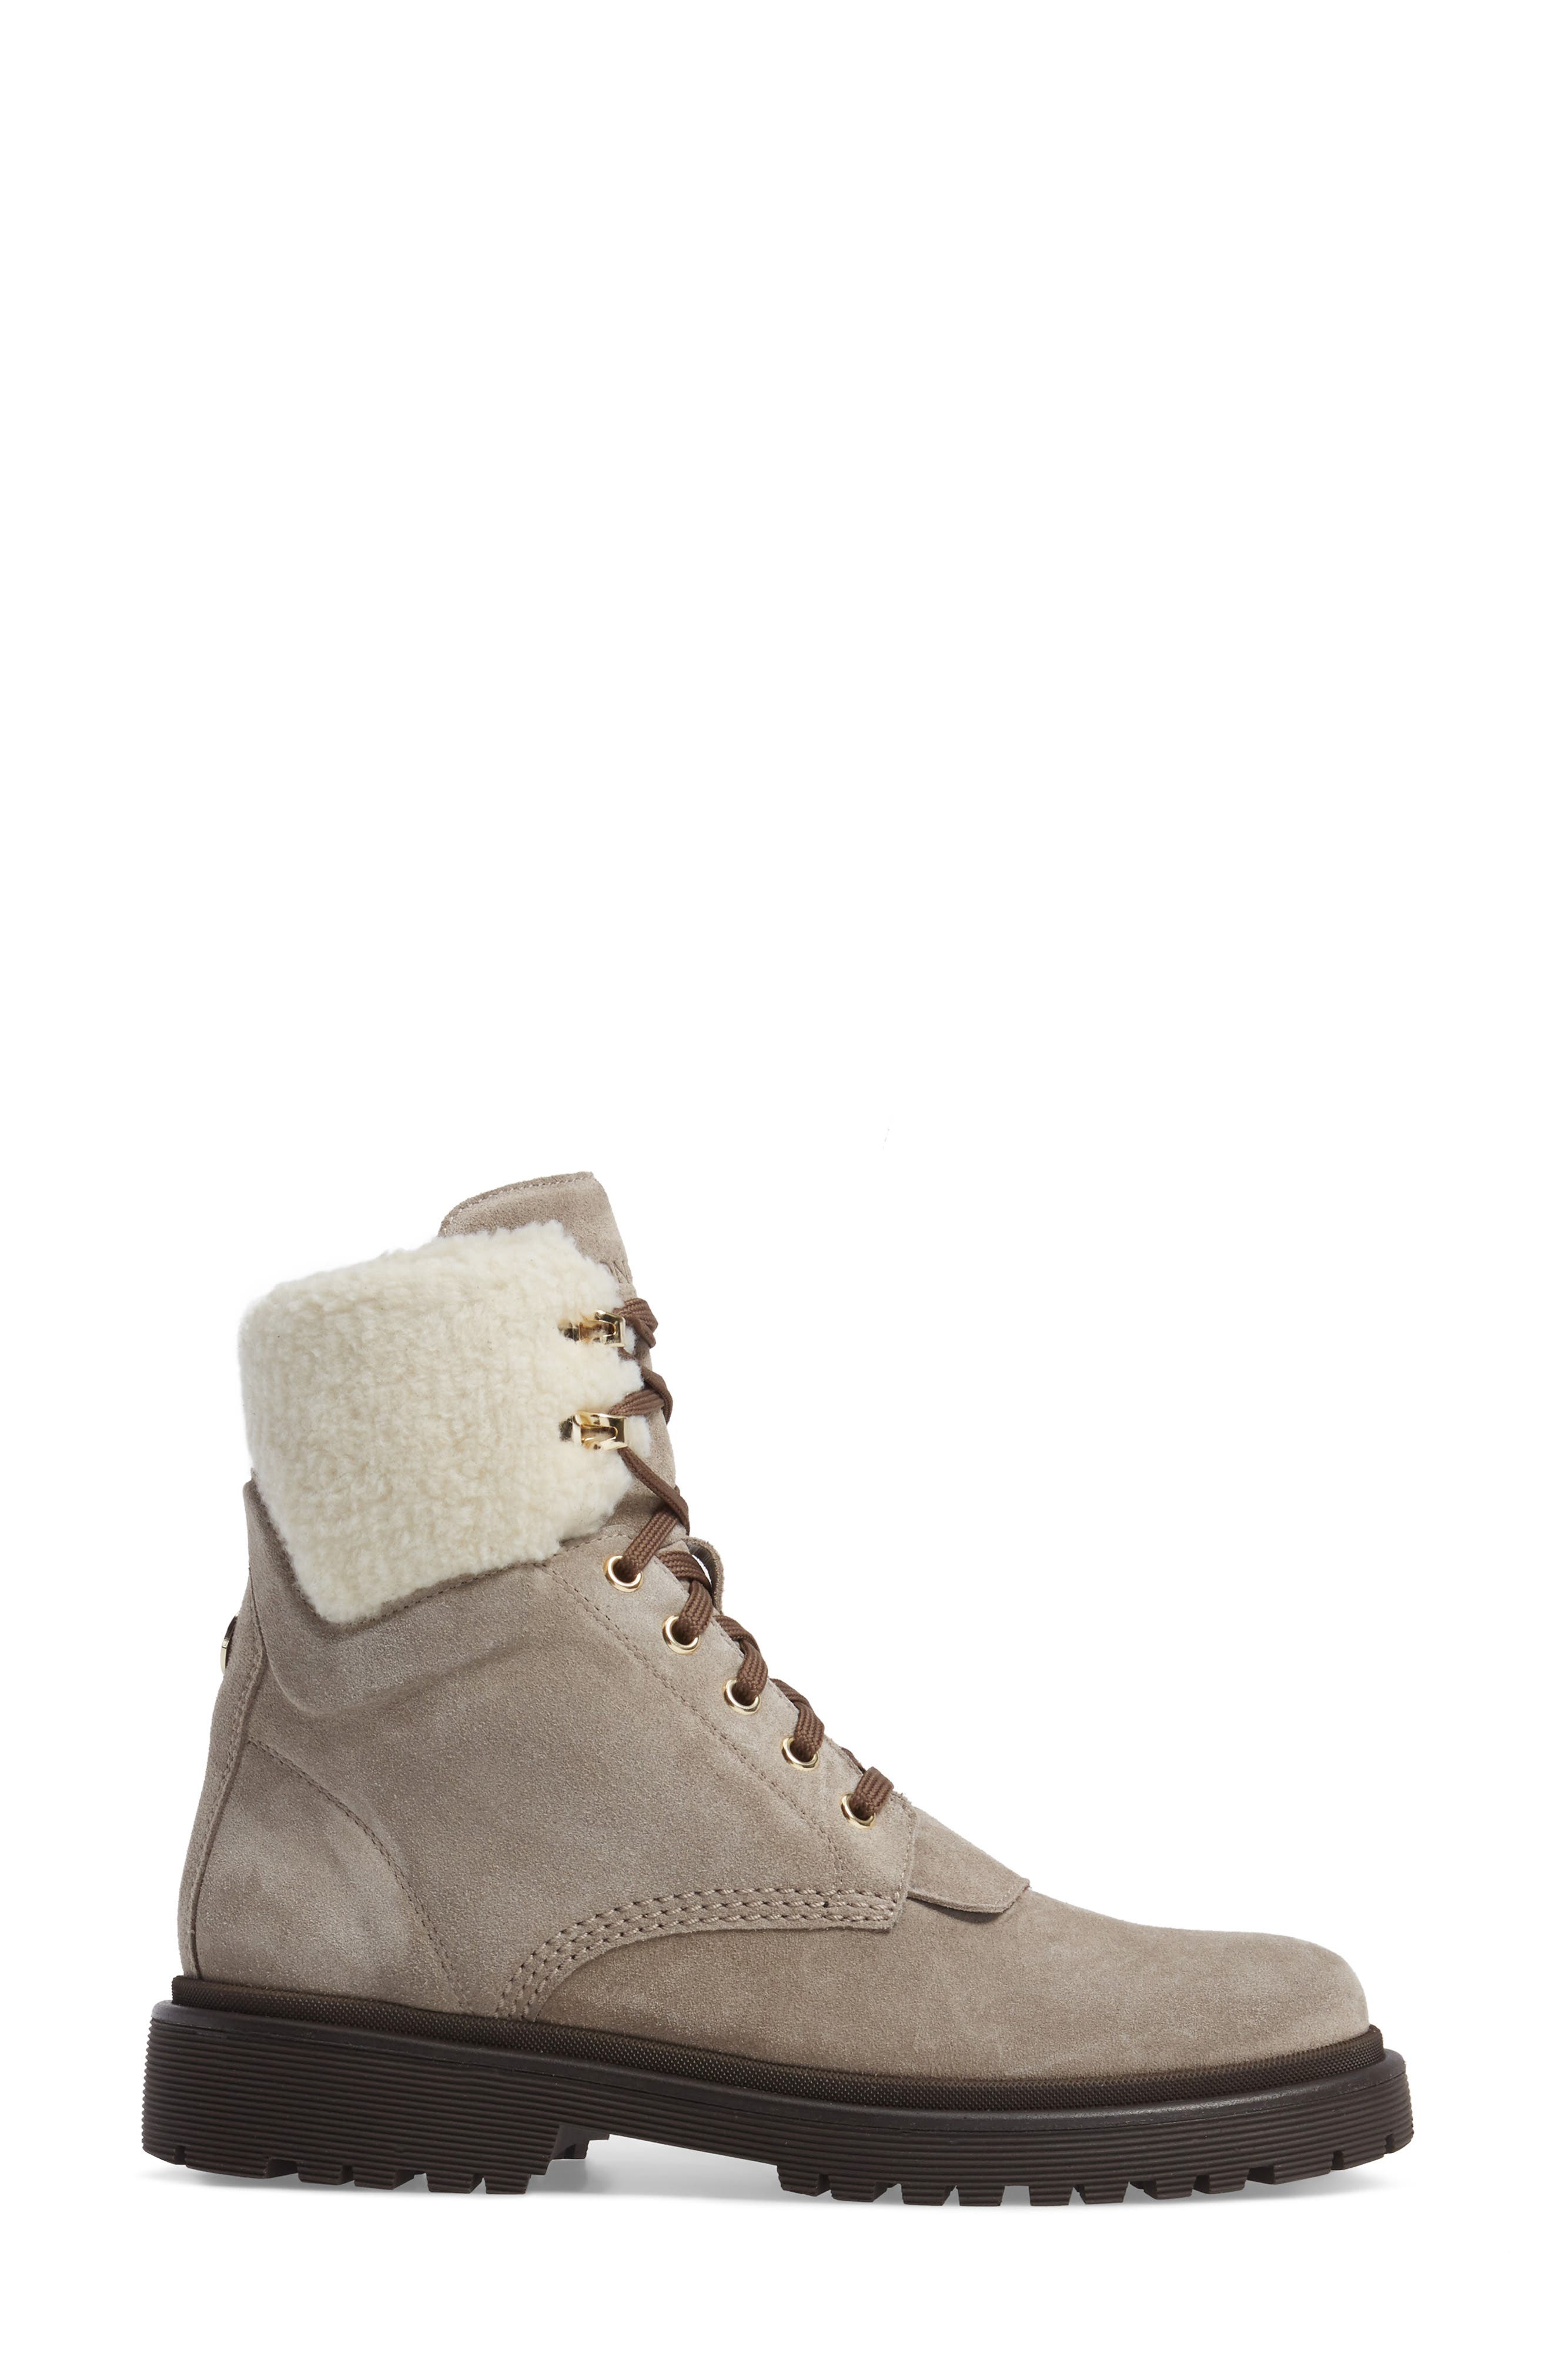 Patty Scarpa Faux Shearling Cuff Boot,                             Alternate thumbnail 3, color,                             BEIGE